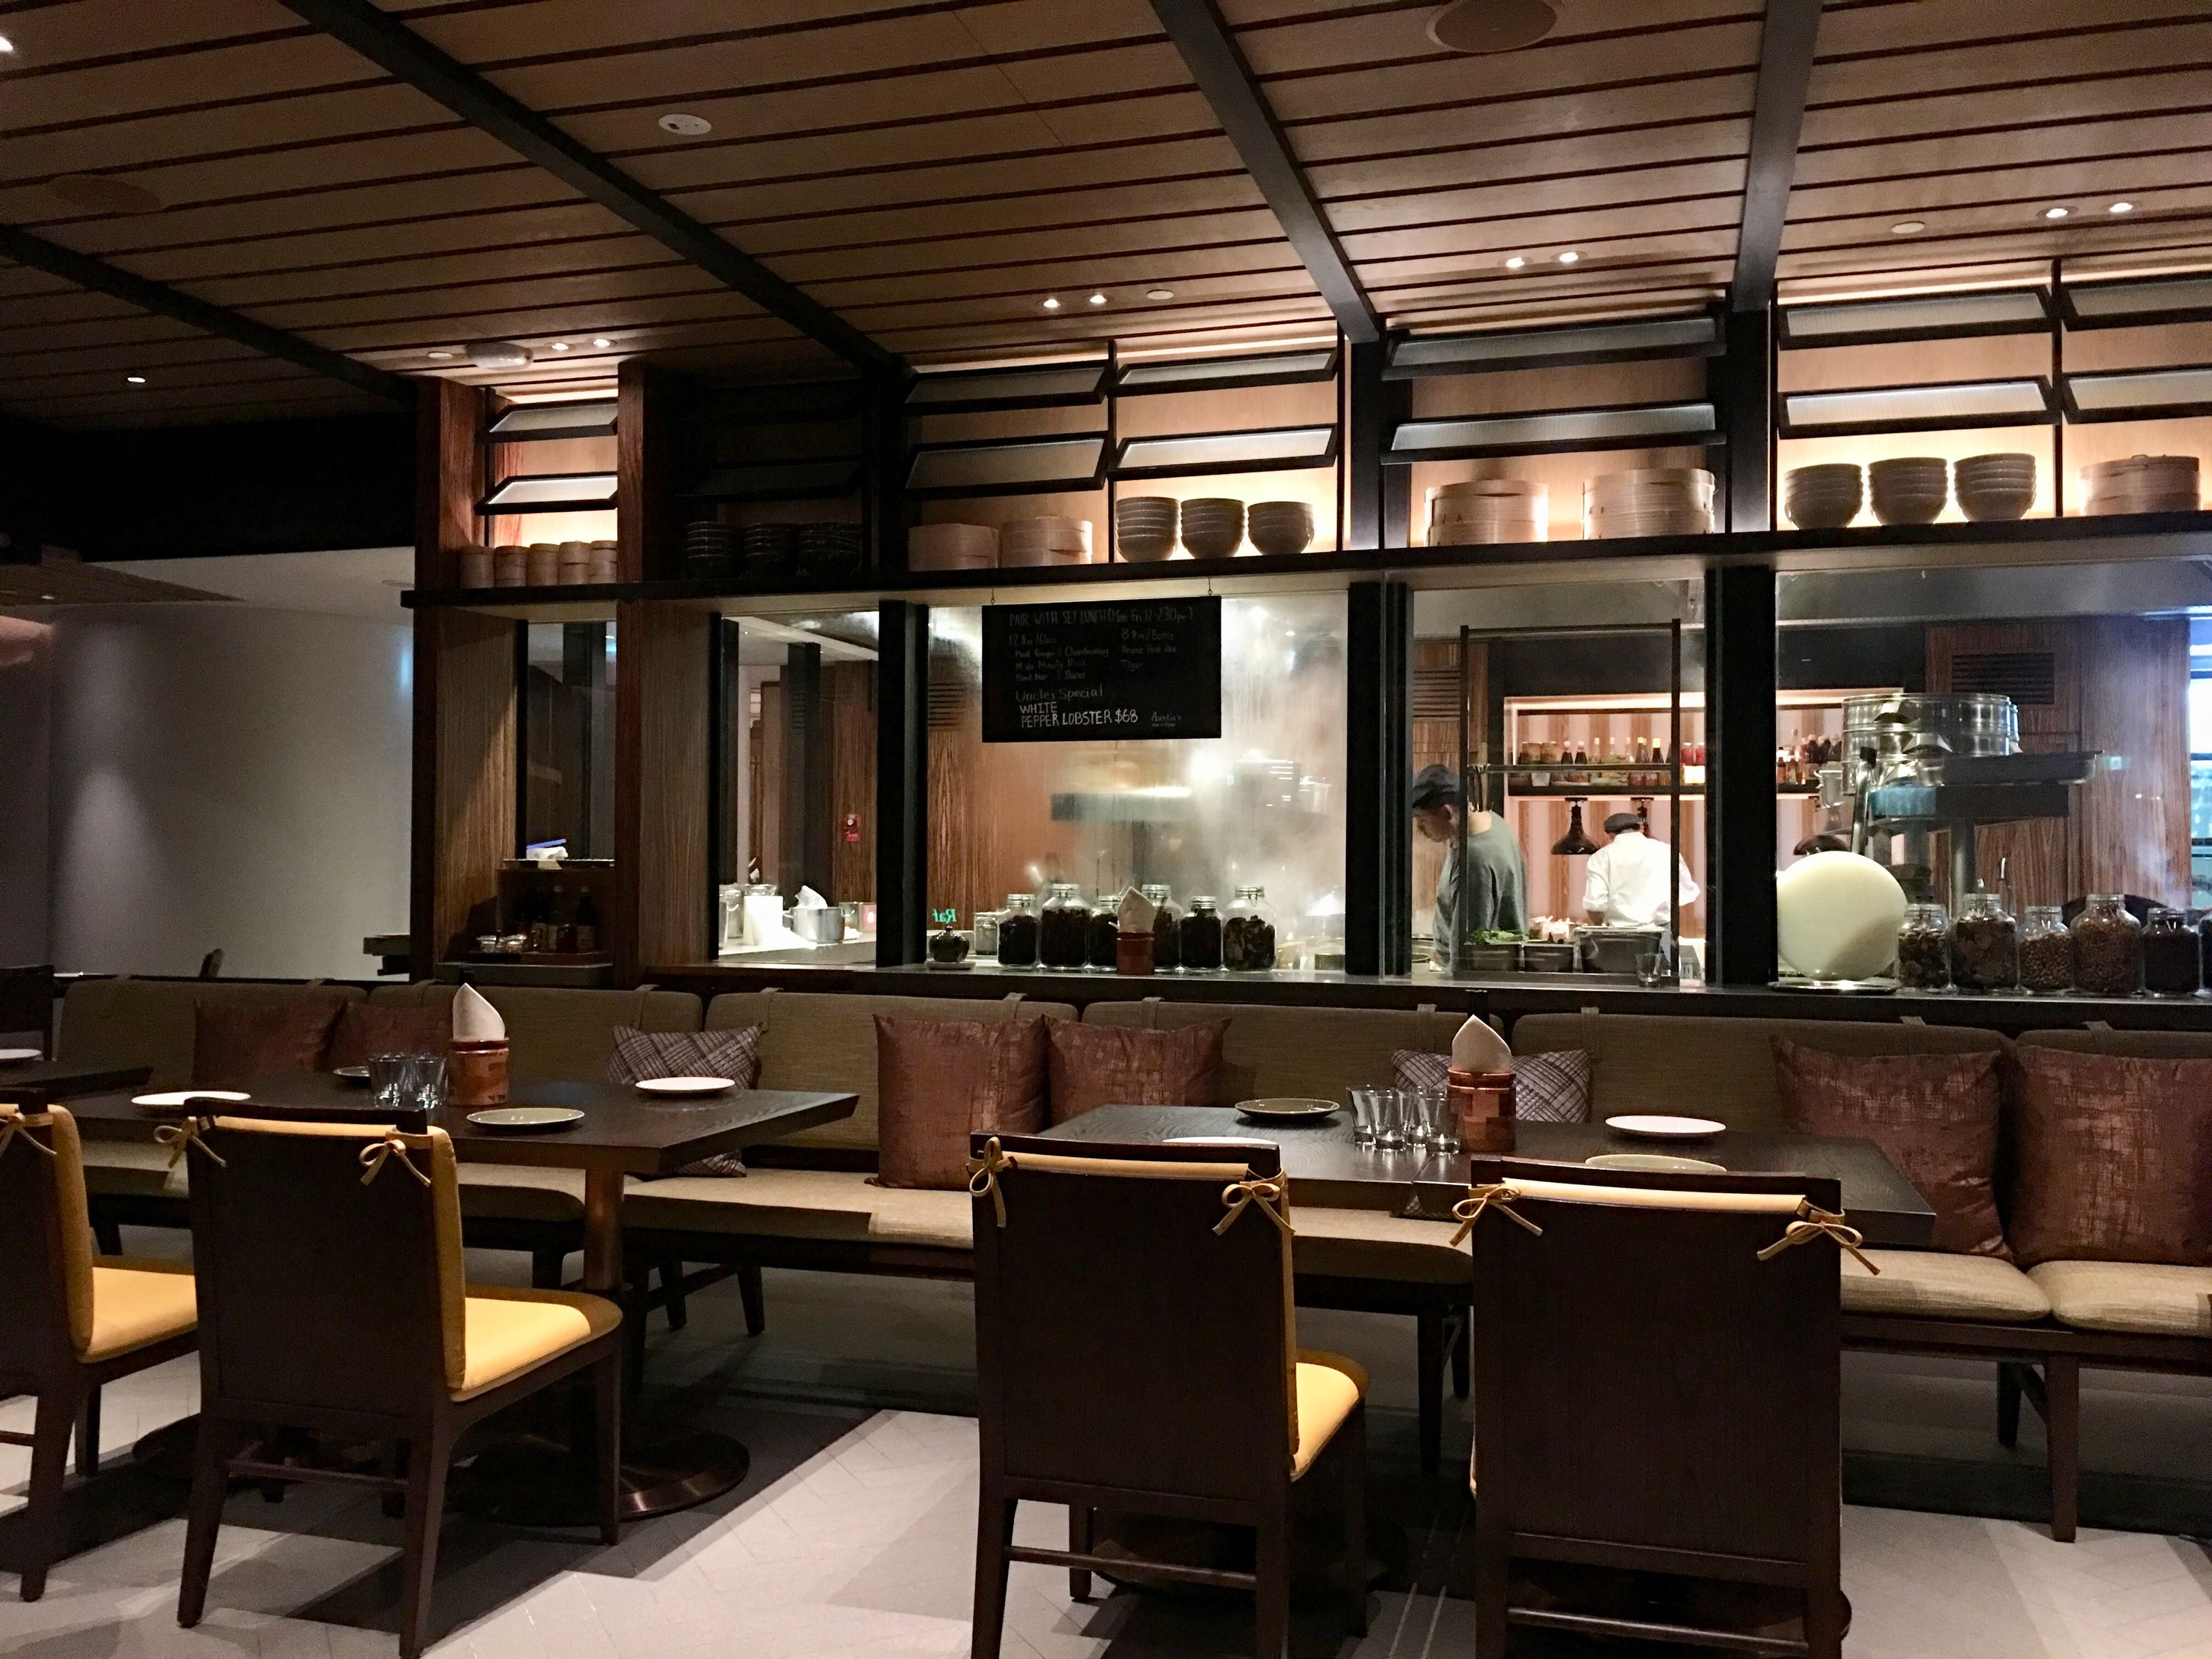 Auntie's Wok and Steam in Andaz Singapore.